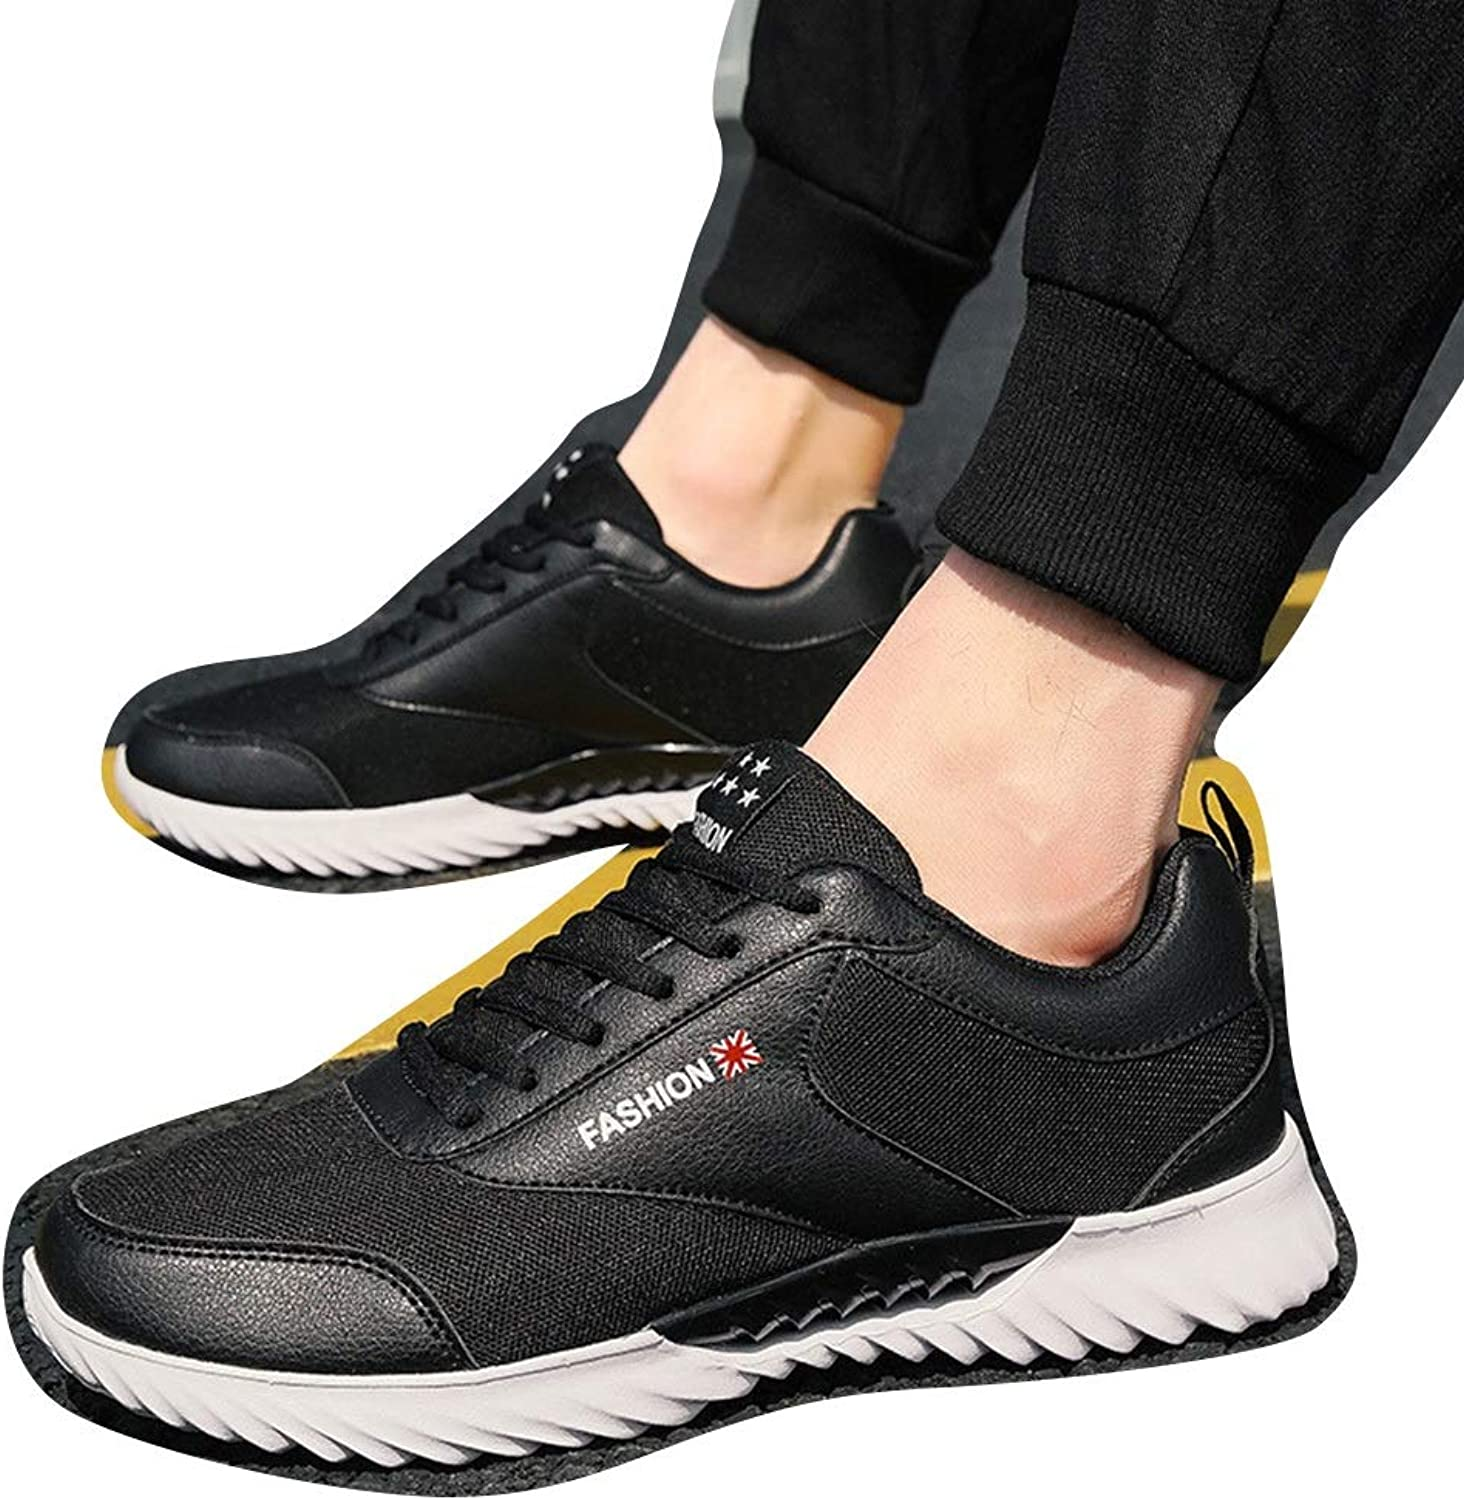 Williess Men's shoes Breathable Mesh Casual shoes Men's Sports shoes (color   Black, Size   42)